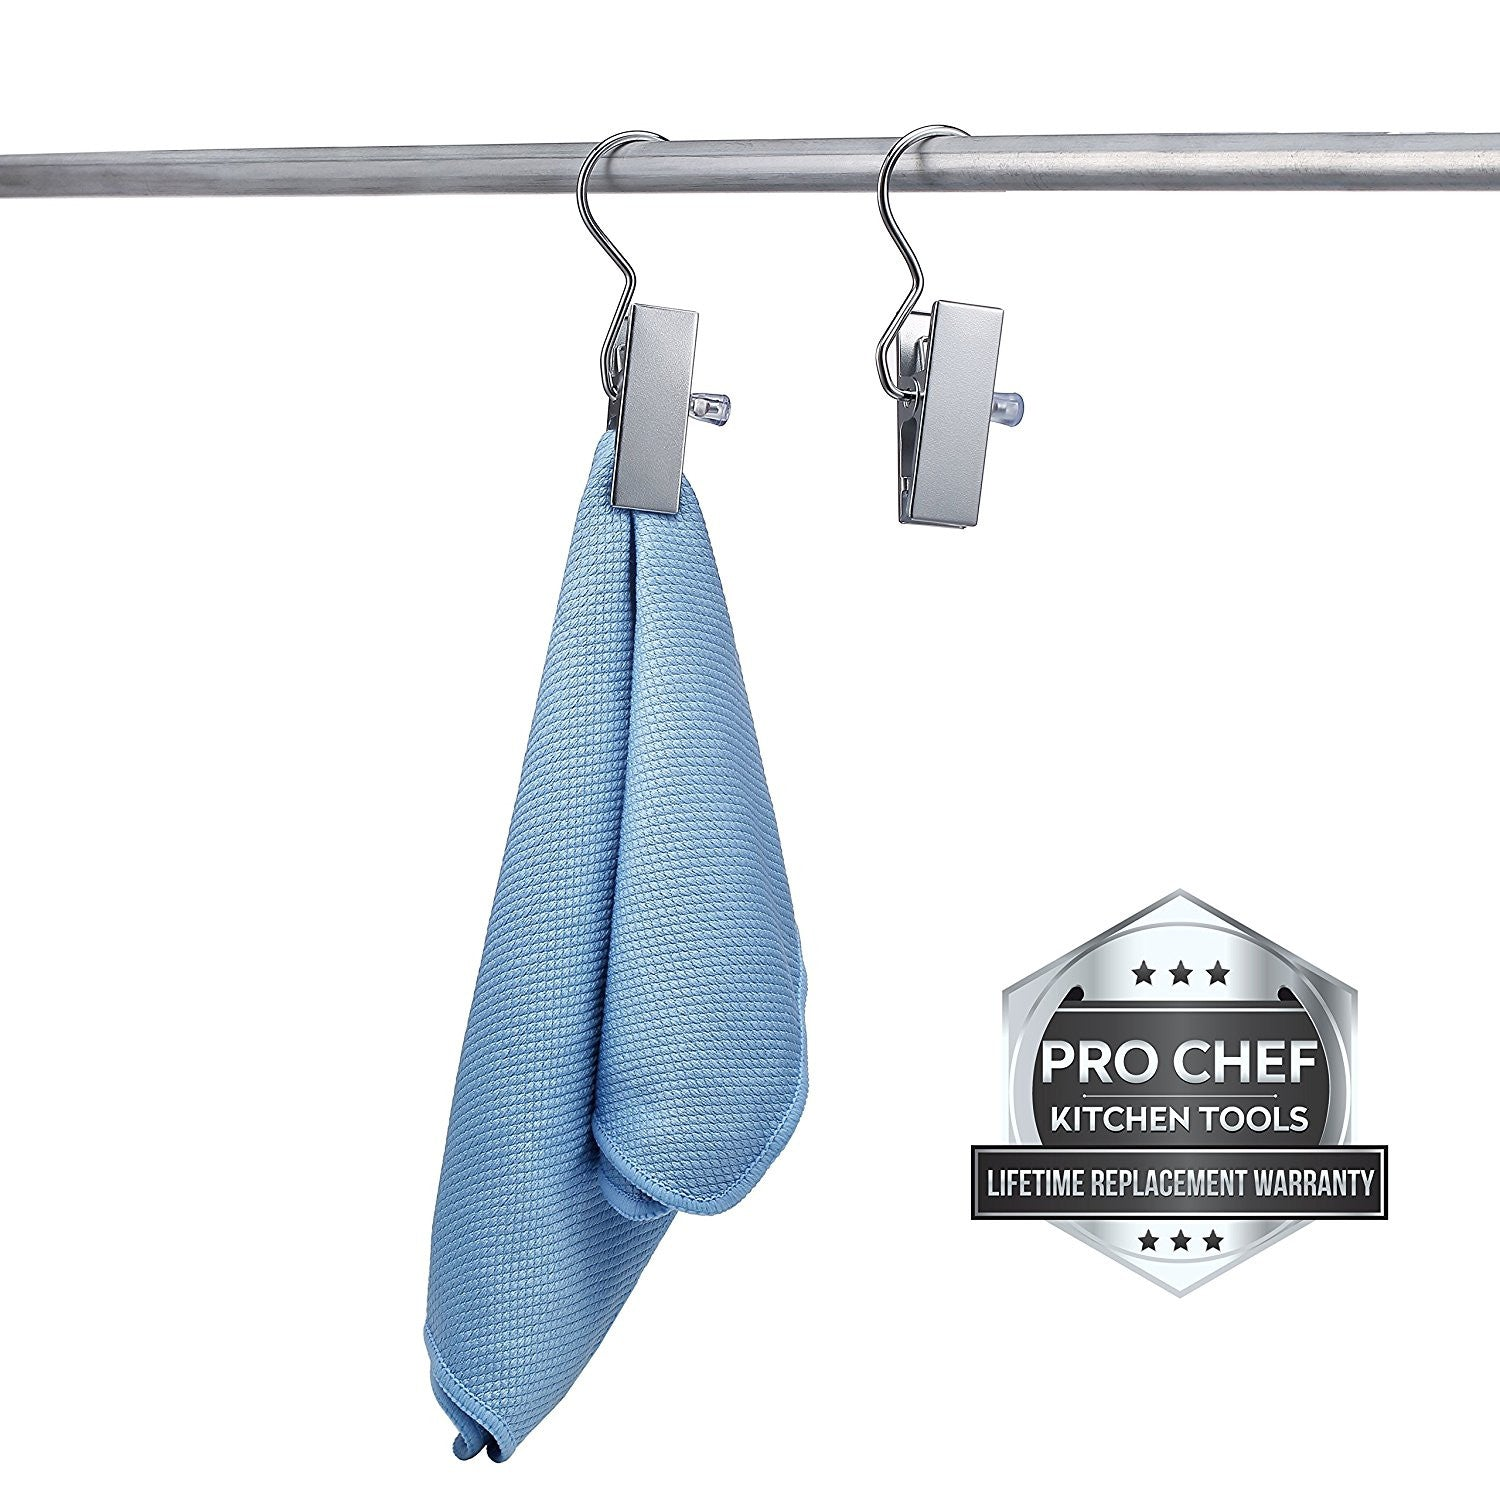 Household Wipes And Cloths - Polish Clean Stainless Steel Sinks